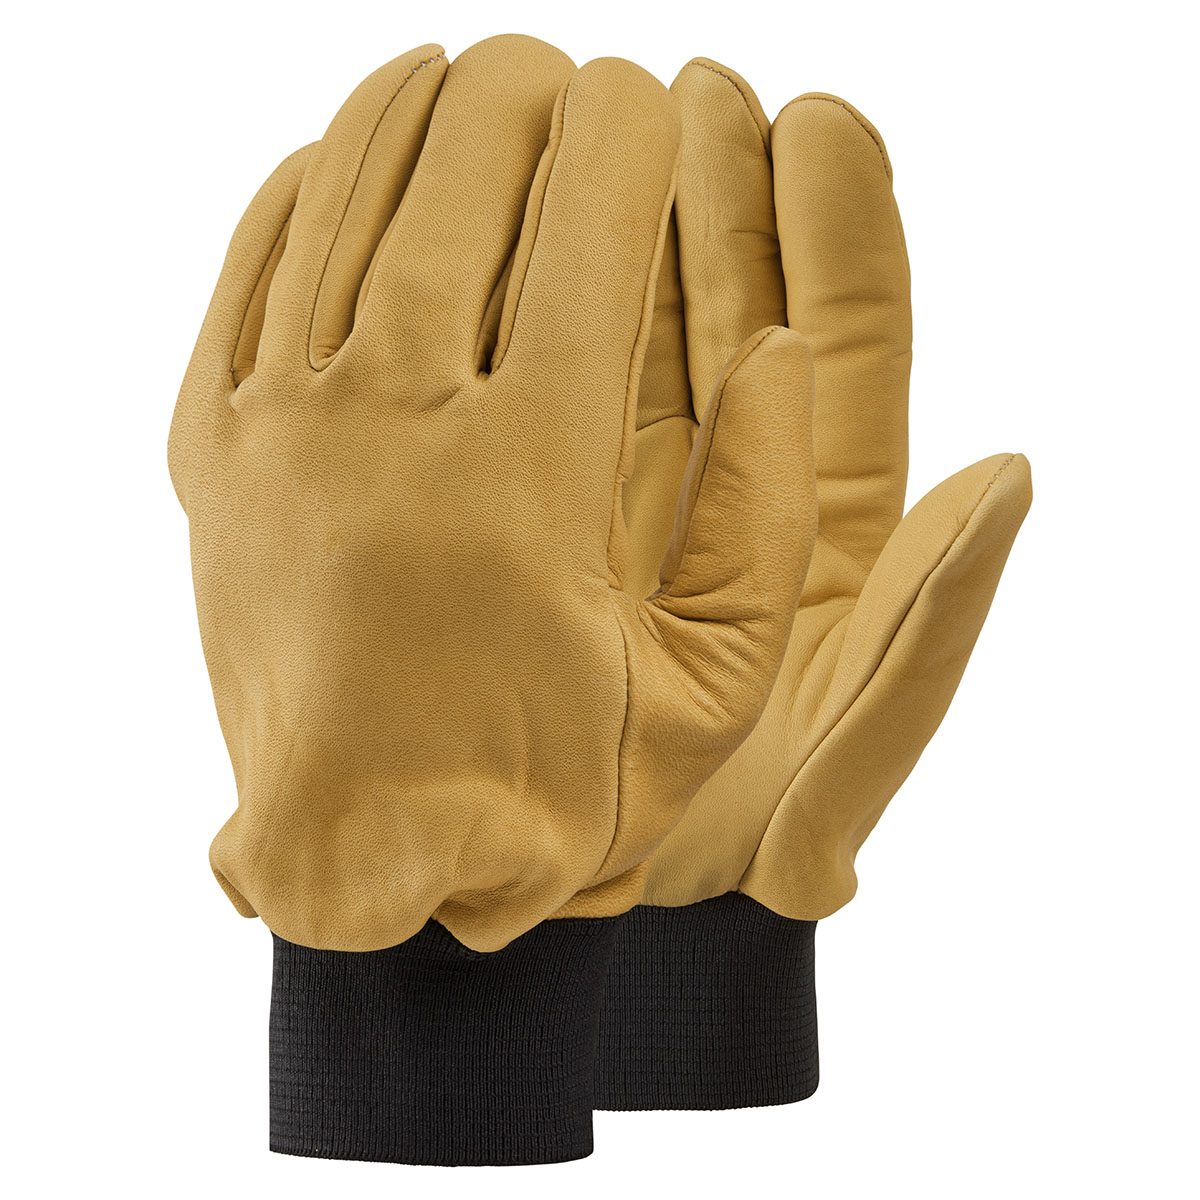 GL6742 Fleece Lined Water-Repellent Leather Drivers Glove